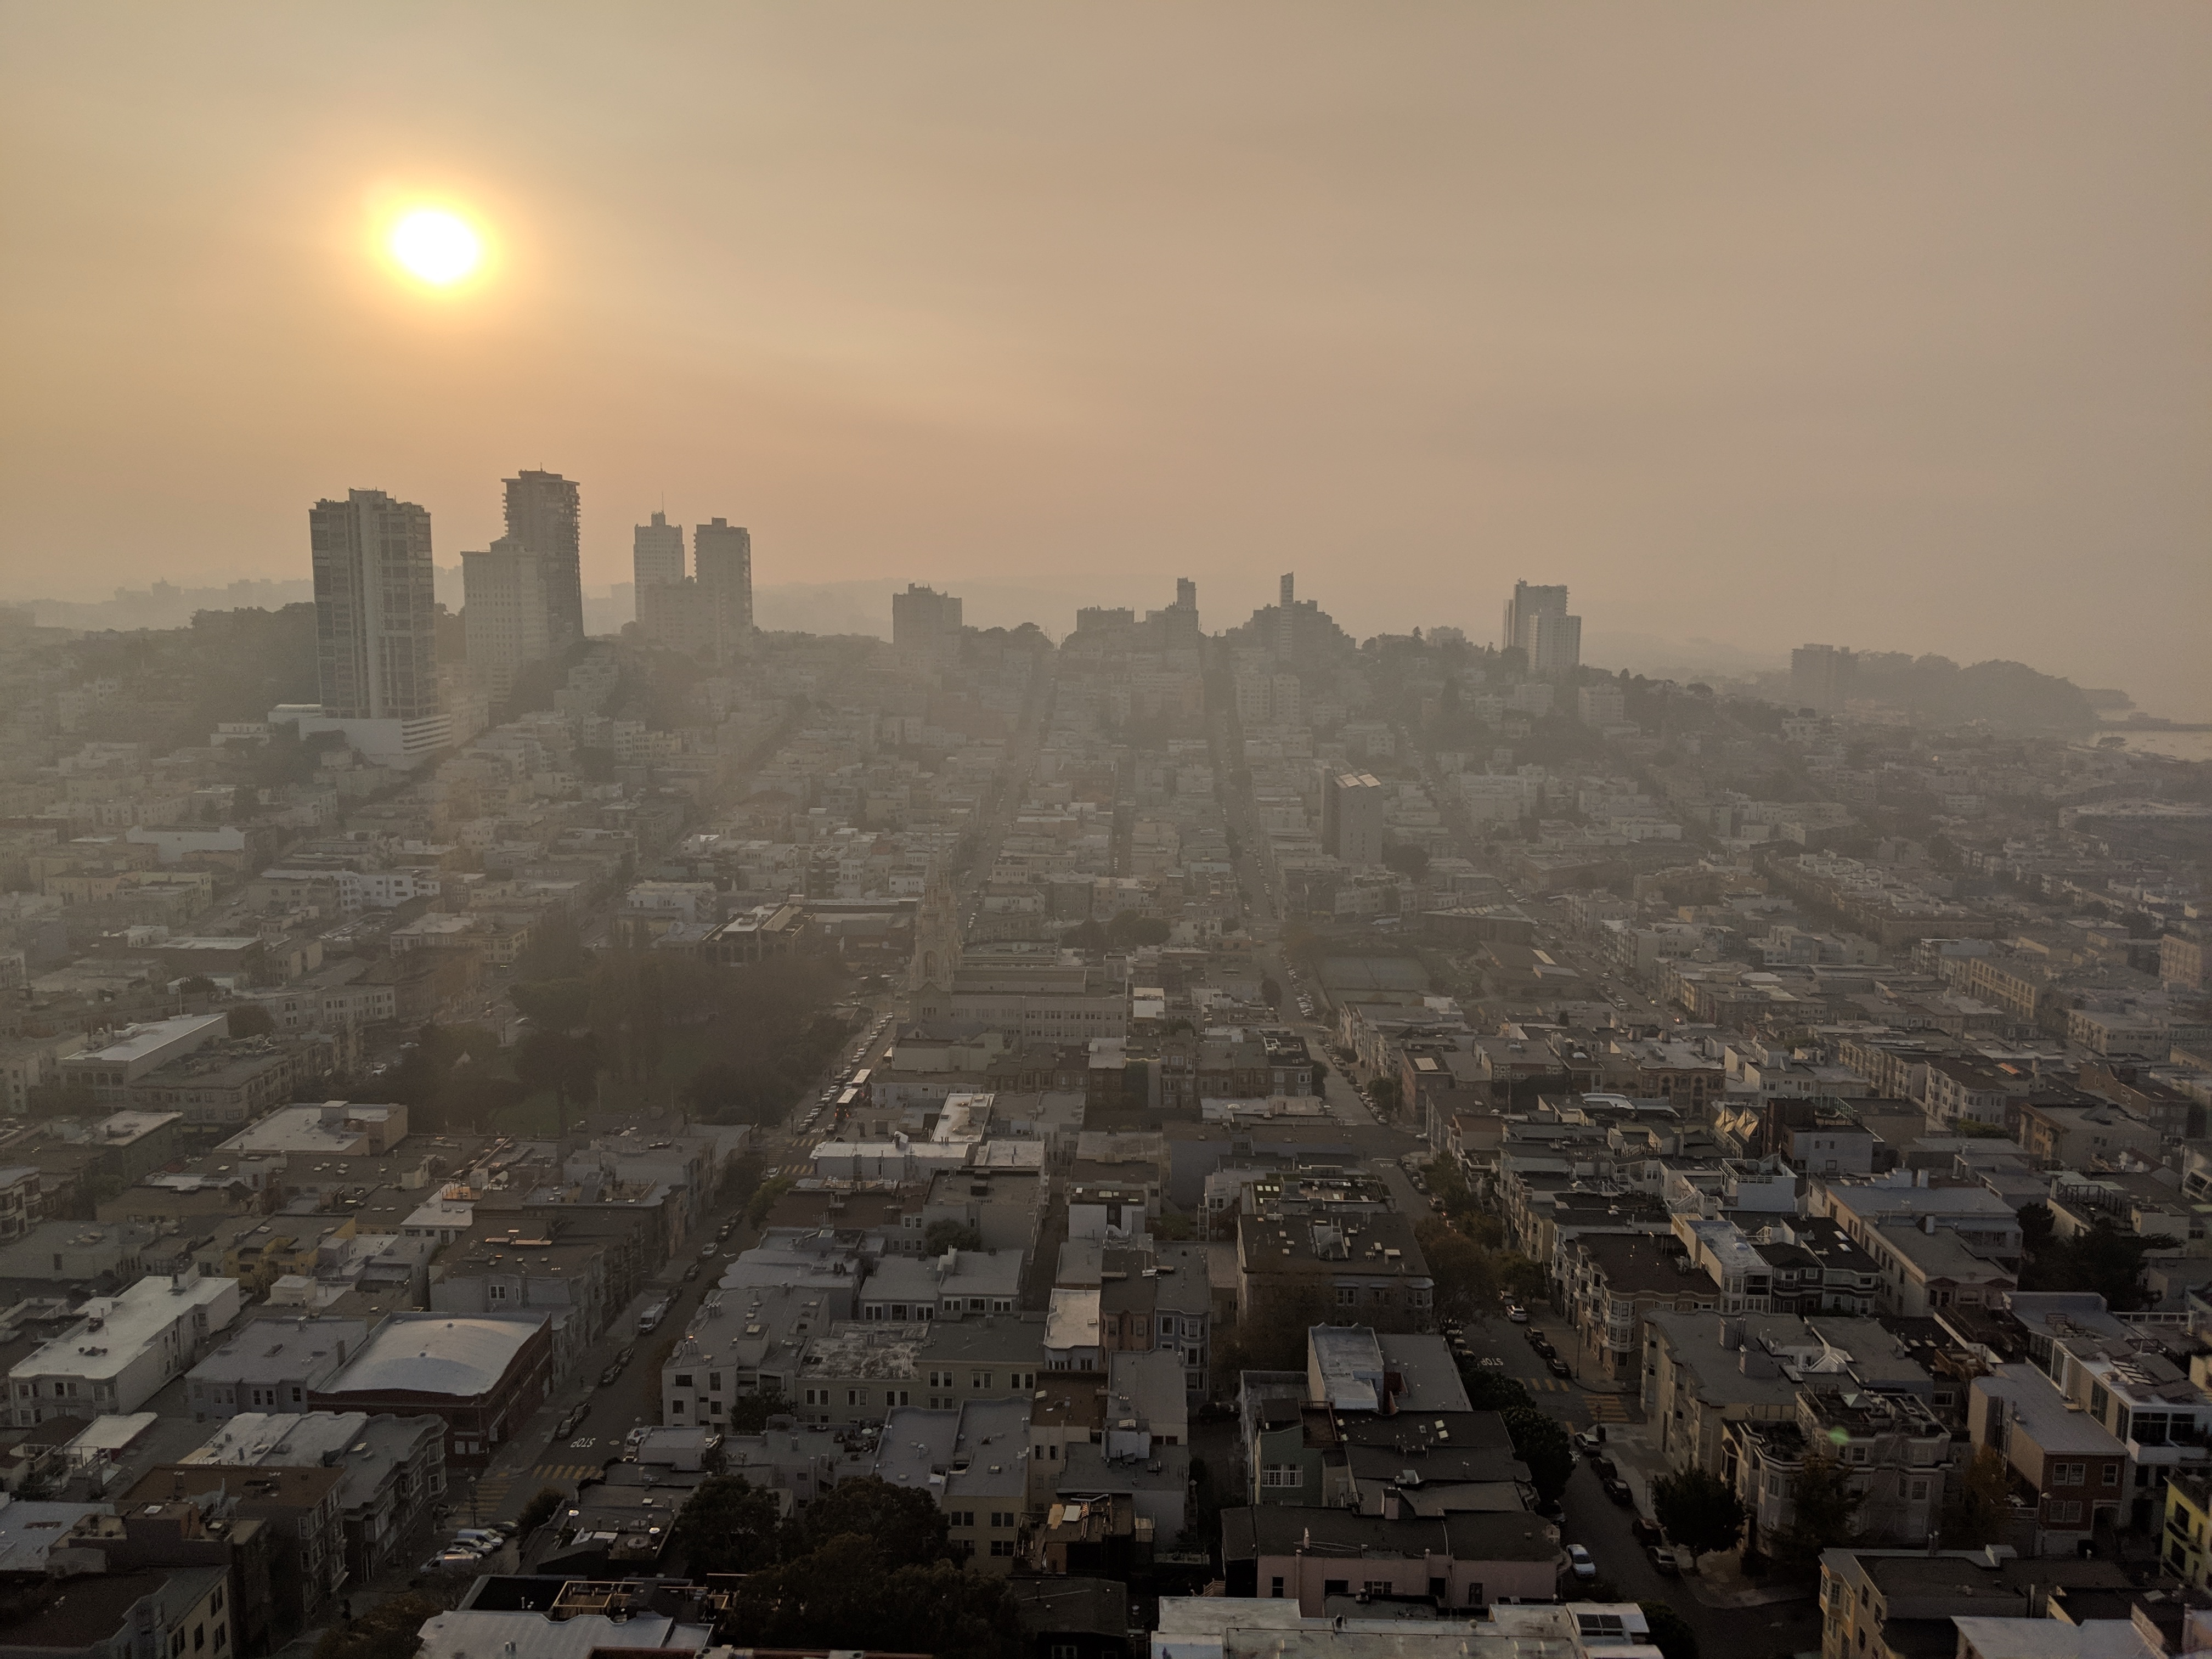 San_Francisco_from_Coit_Tower_during_Camp_Fire-4